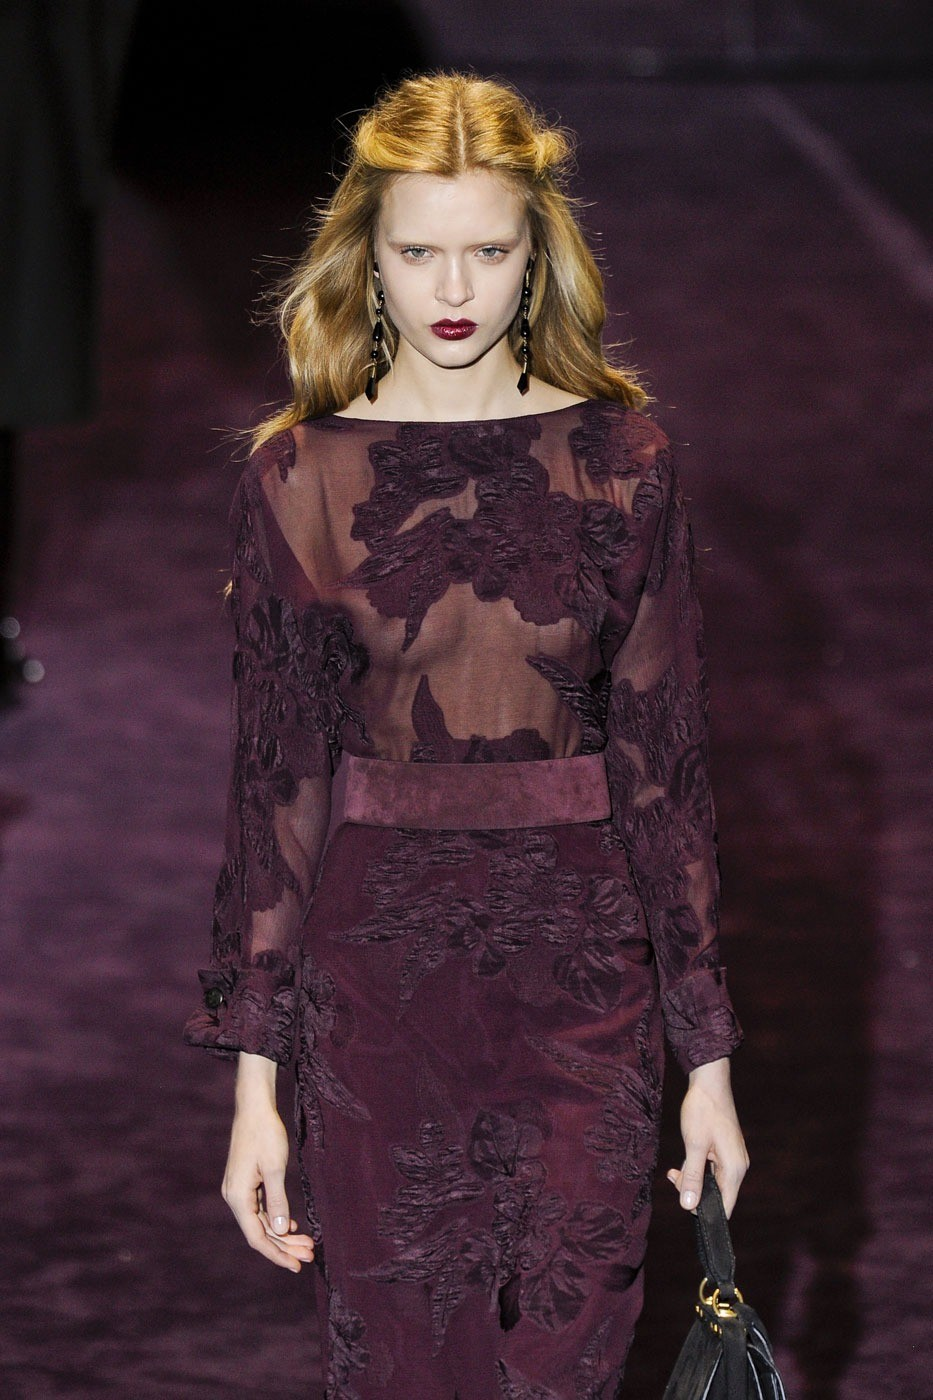 Gucci Fall 2012, Alberta Ferretti Fall 2012